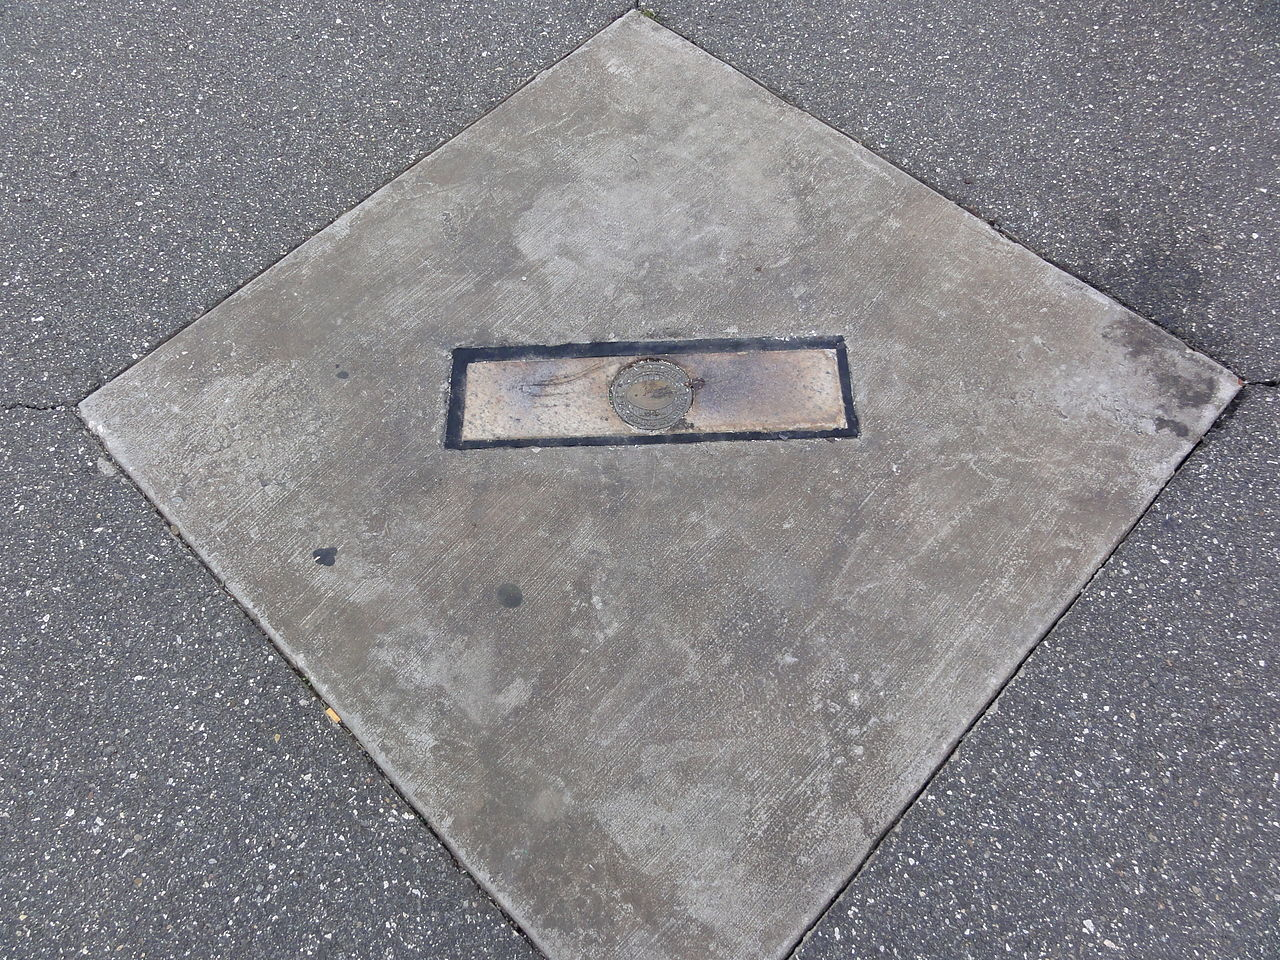 Veterans Stadium Pitching Mound Marker located in the parking lot at Citizens Bank Park.